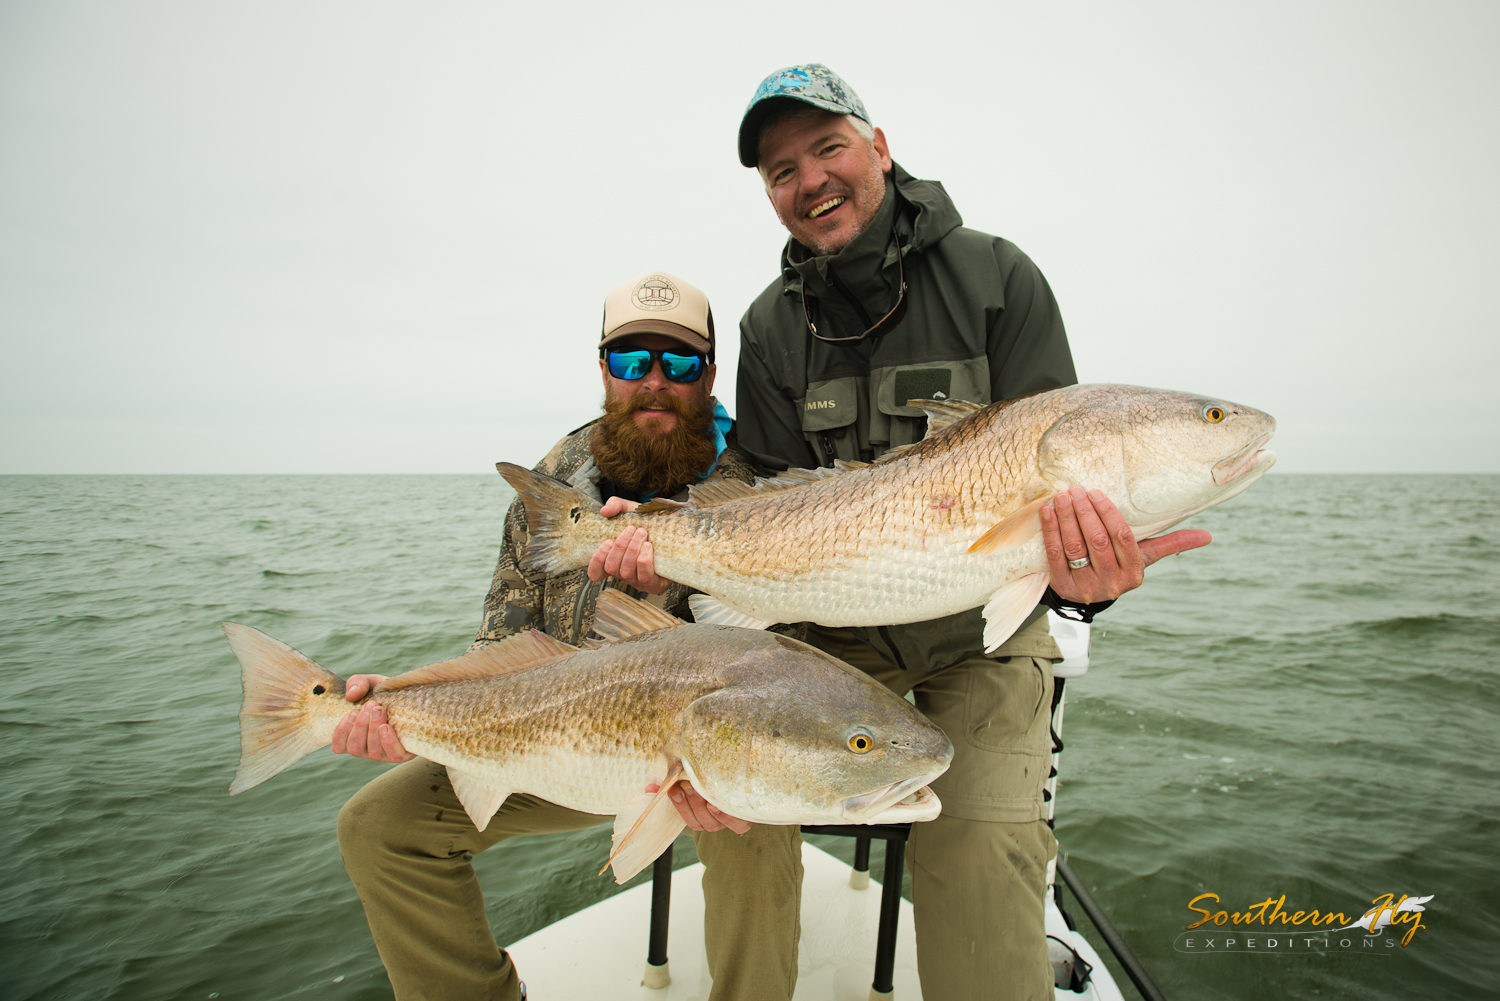 Light Tackle Guide for the Best Red Fish Fishing Southern Fly Expeditions